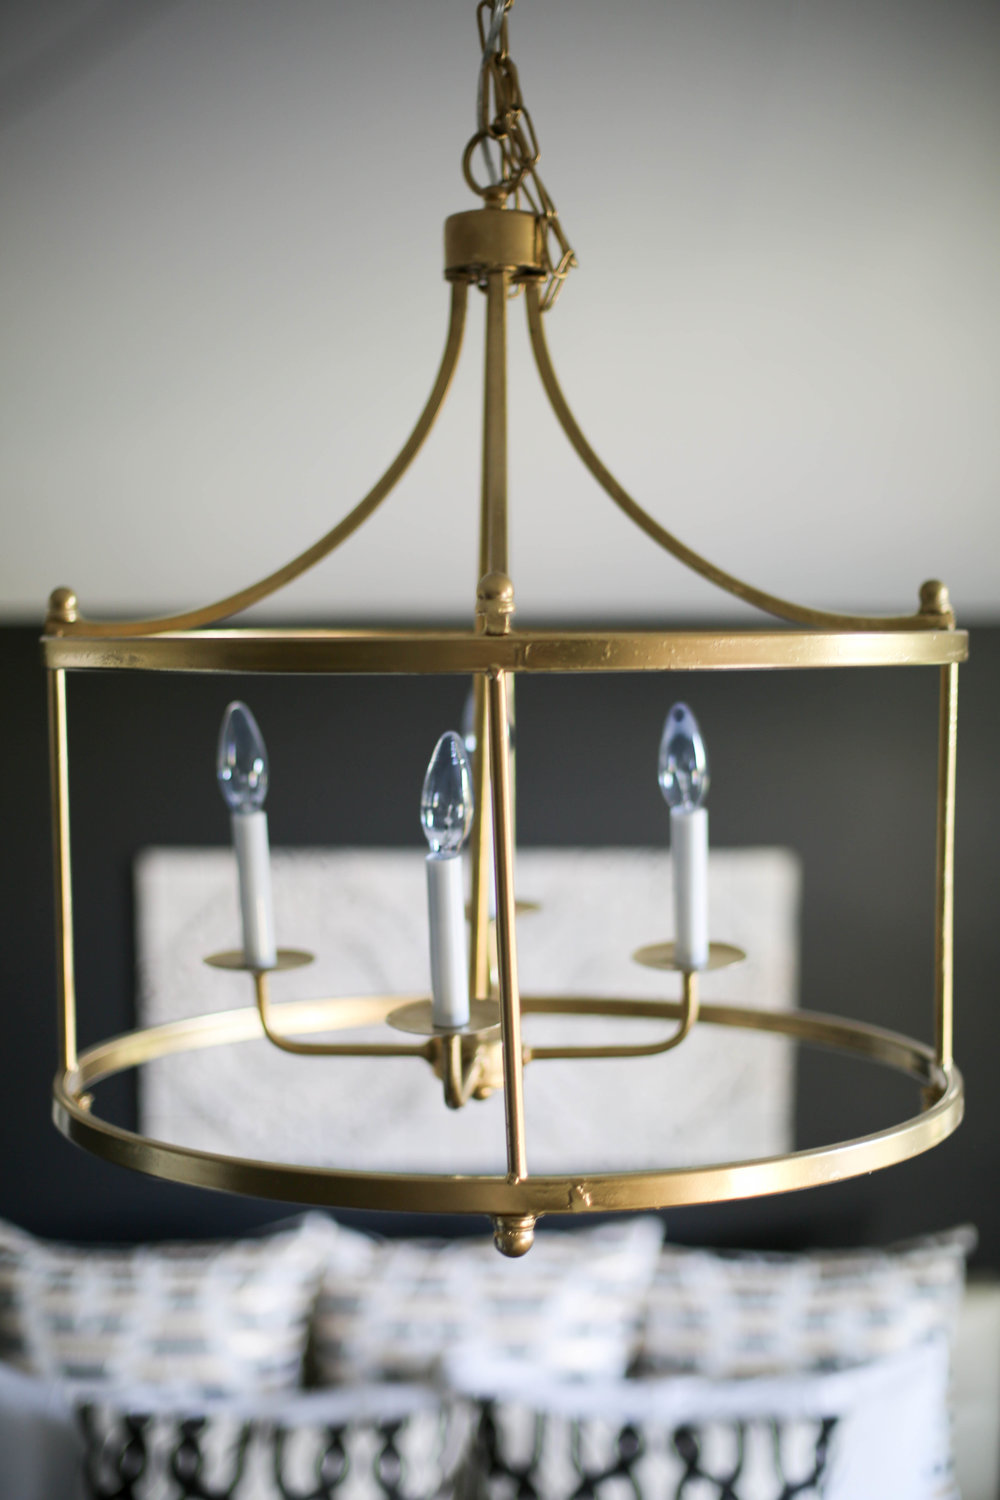 gold chandelier, french gold chandelier, vintage gold chandelier, antique gold chandelier, master bedroom chandelier, bedroom chandelier